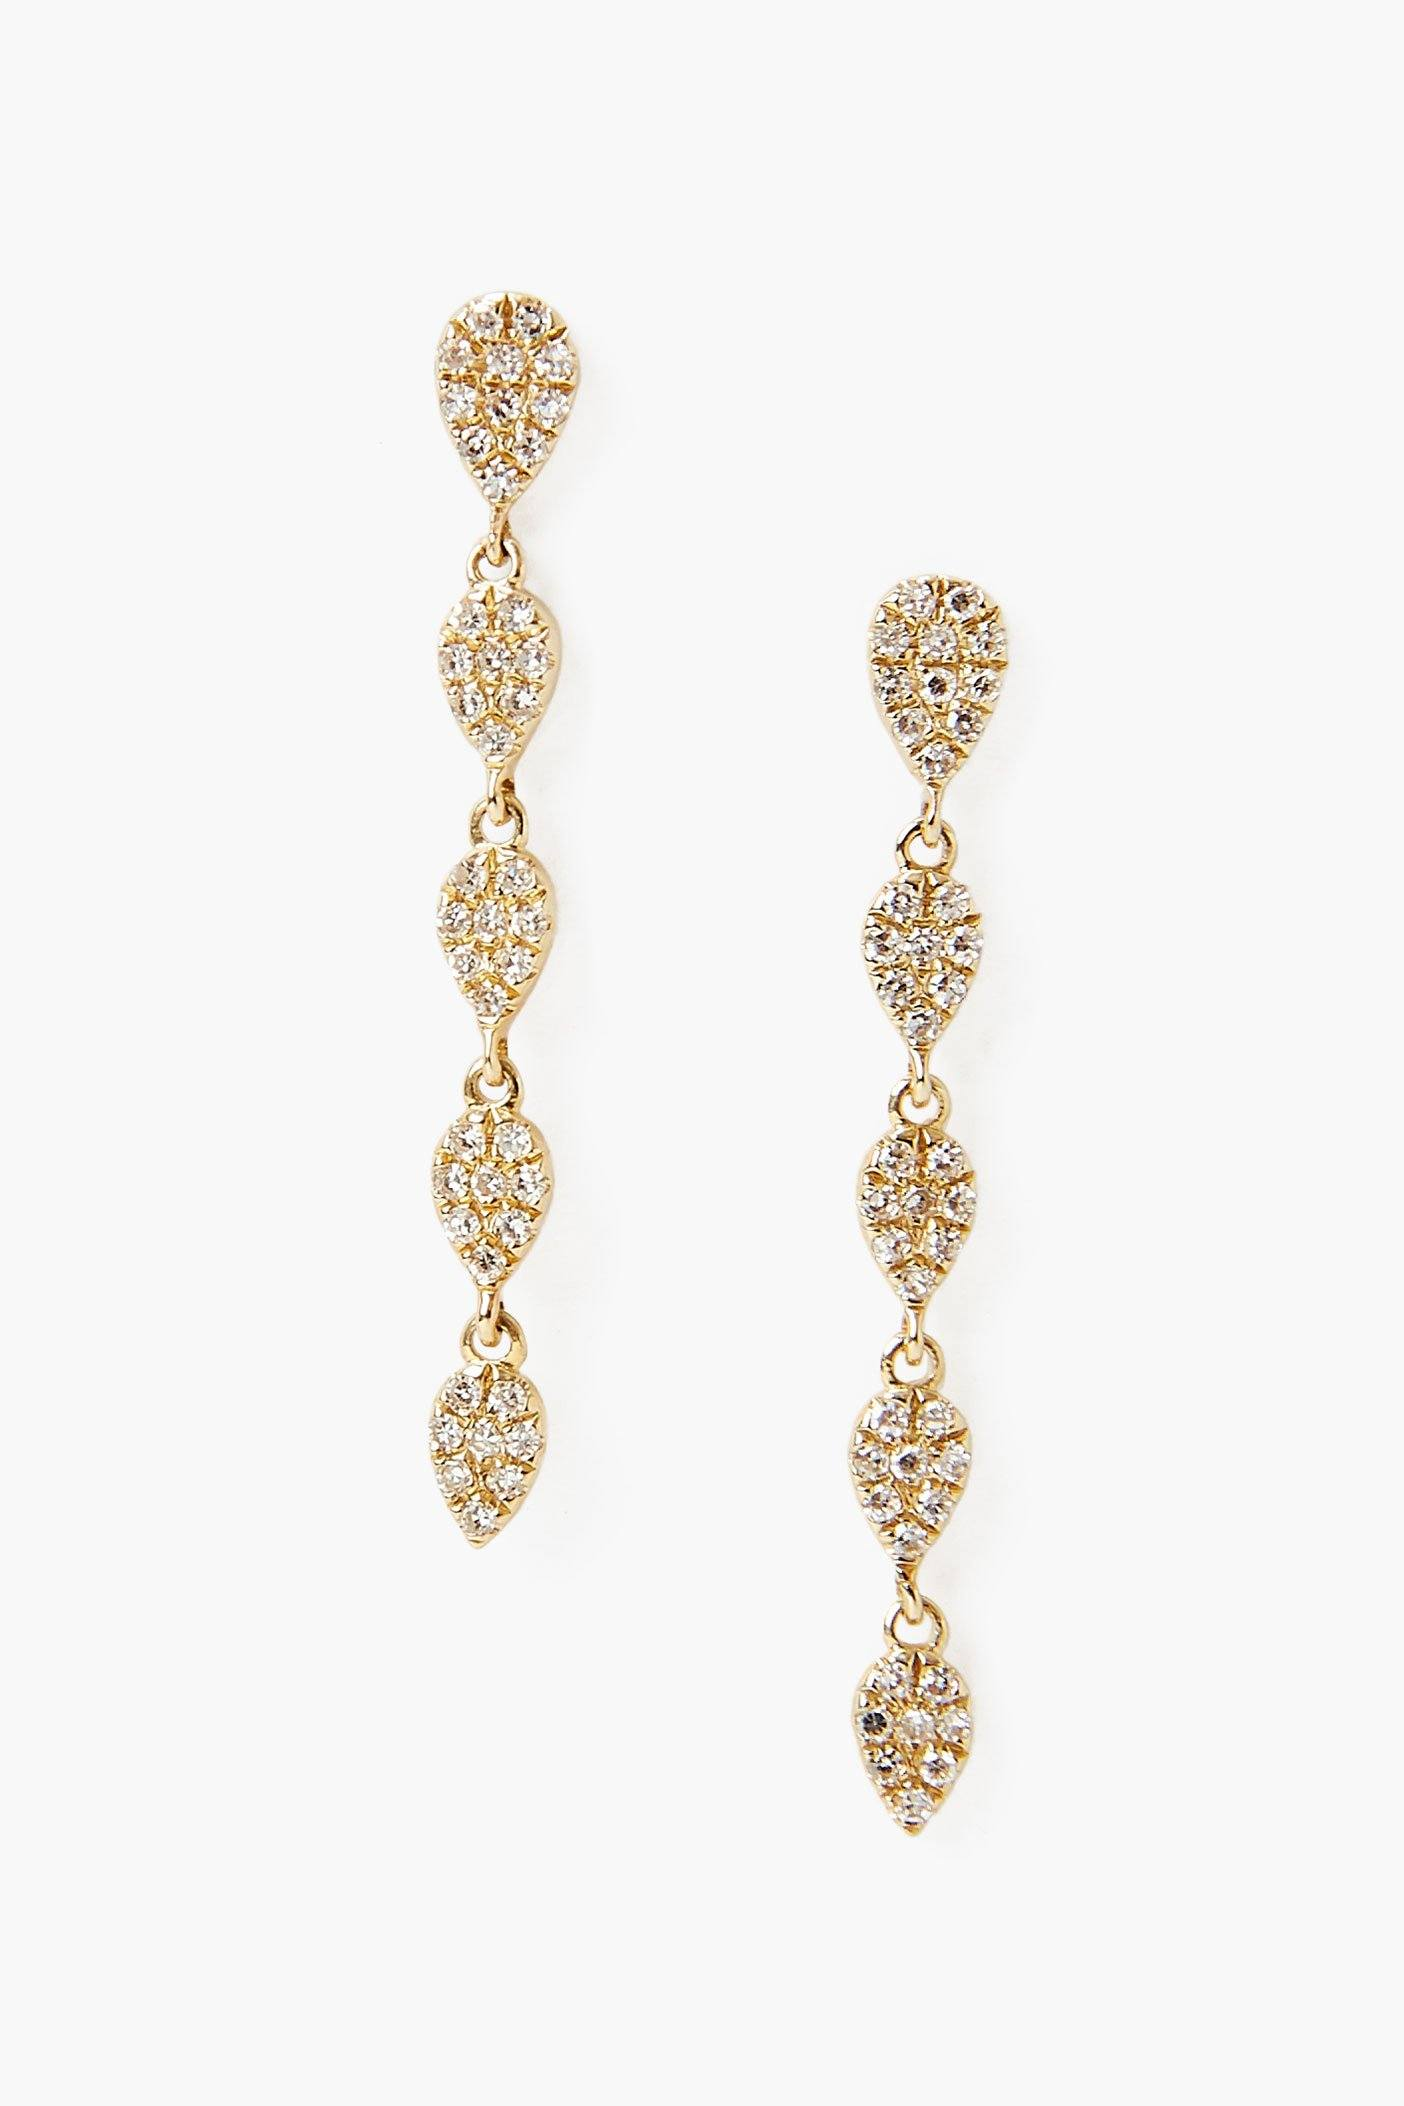 14k 5 Tier Drop Earring with Pavé Diamond